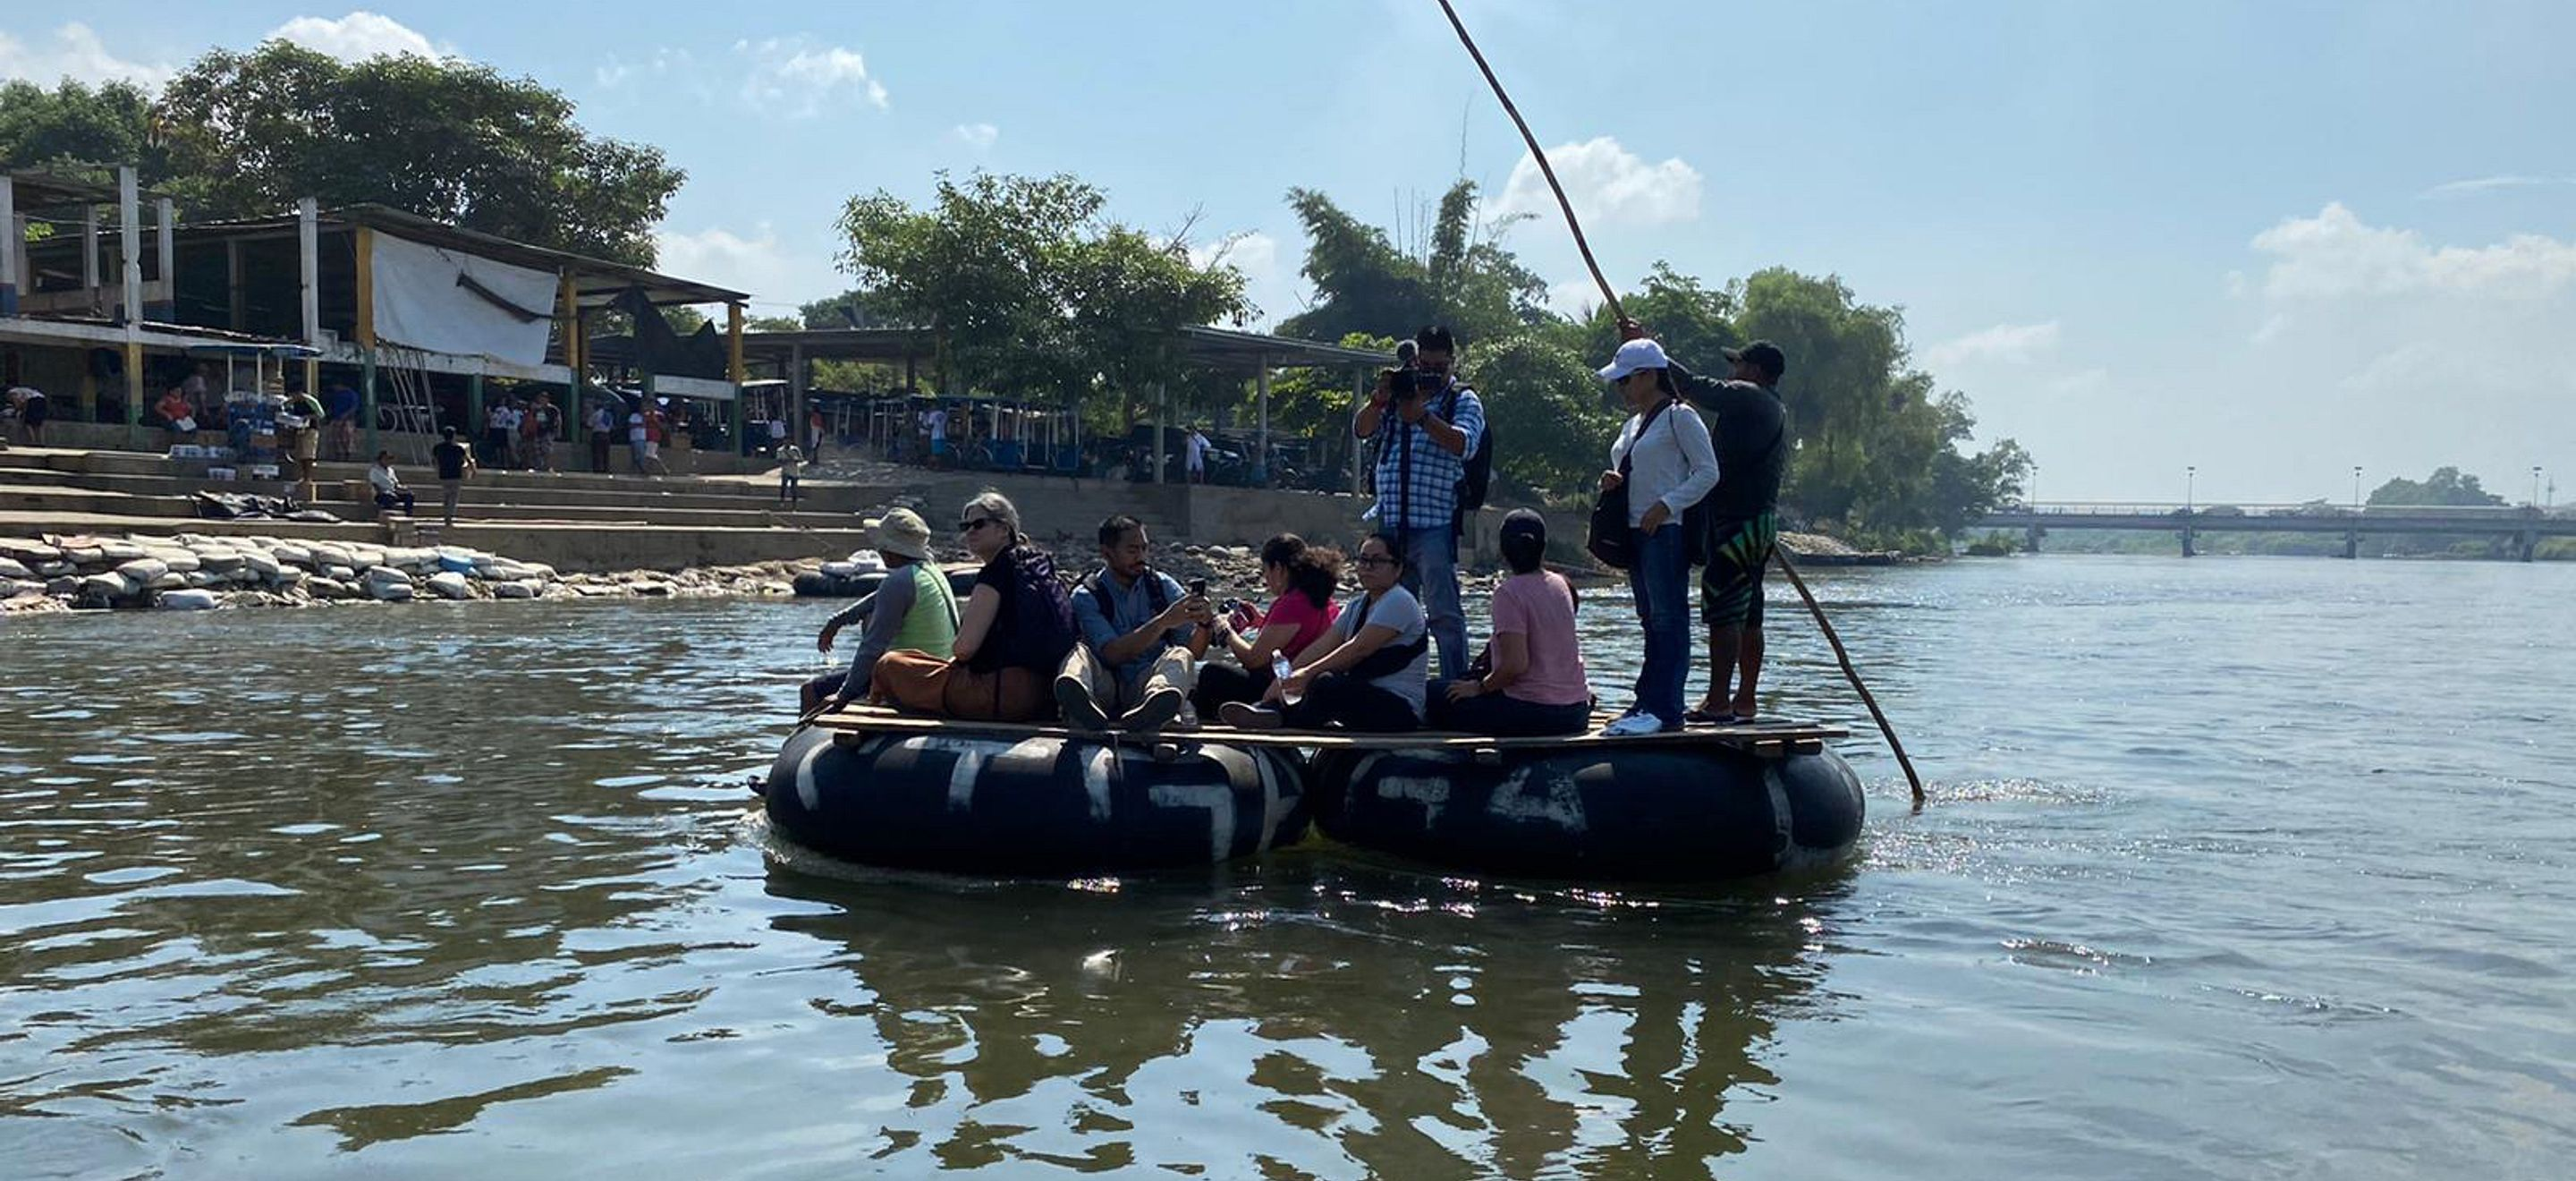 Members of a fact-finding delegation cross a river that divides Mexico from Guatemala. 6 members of the delegation are seated across two black inner tubes connected by a wooden slab. 3 members of the delegation stand on the raft, one with a video camera, one with a stick to steer the raft. A bridge is visible in the distance, and on the shore there are concrete stairs and many people congregated under open pavilions.